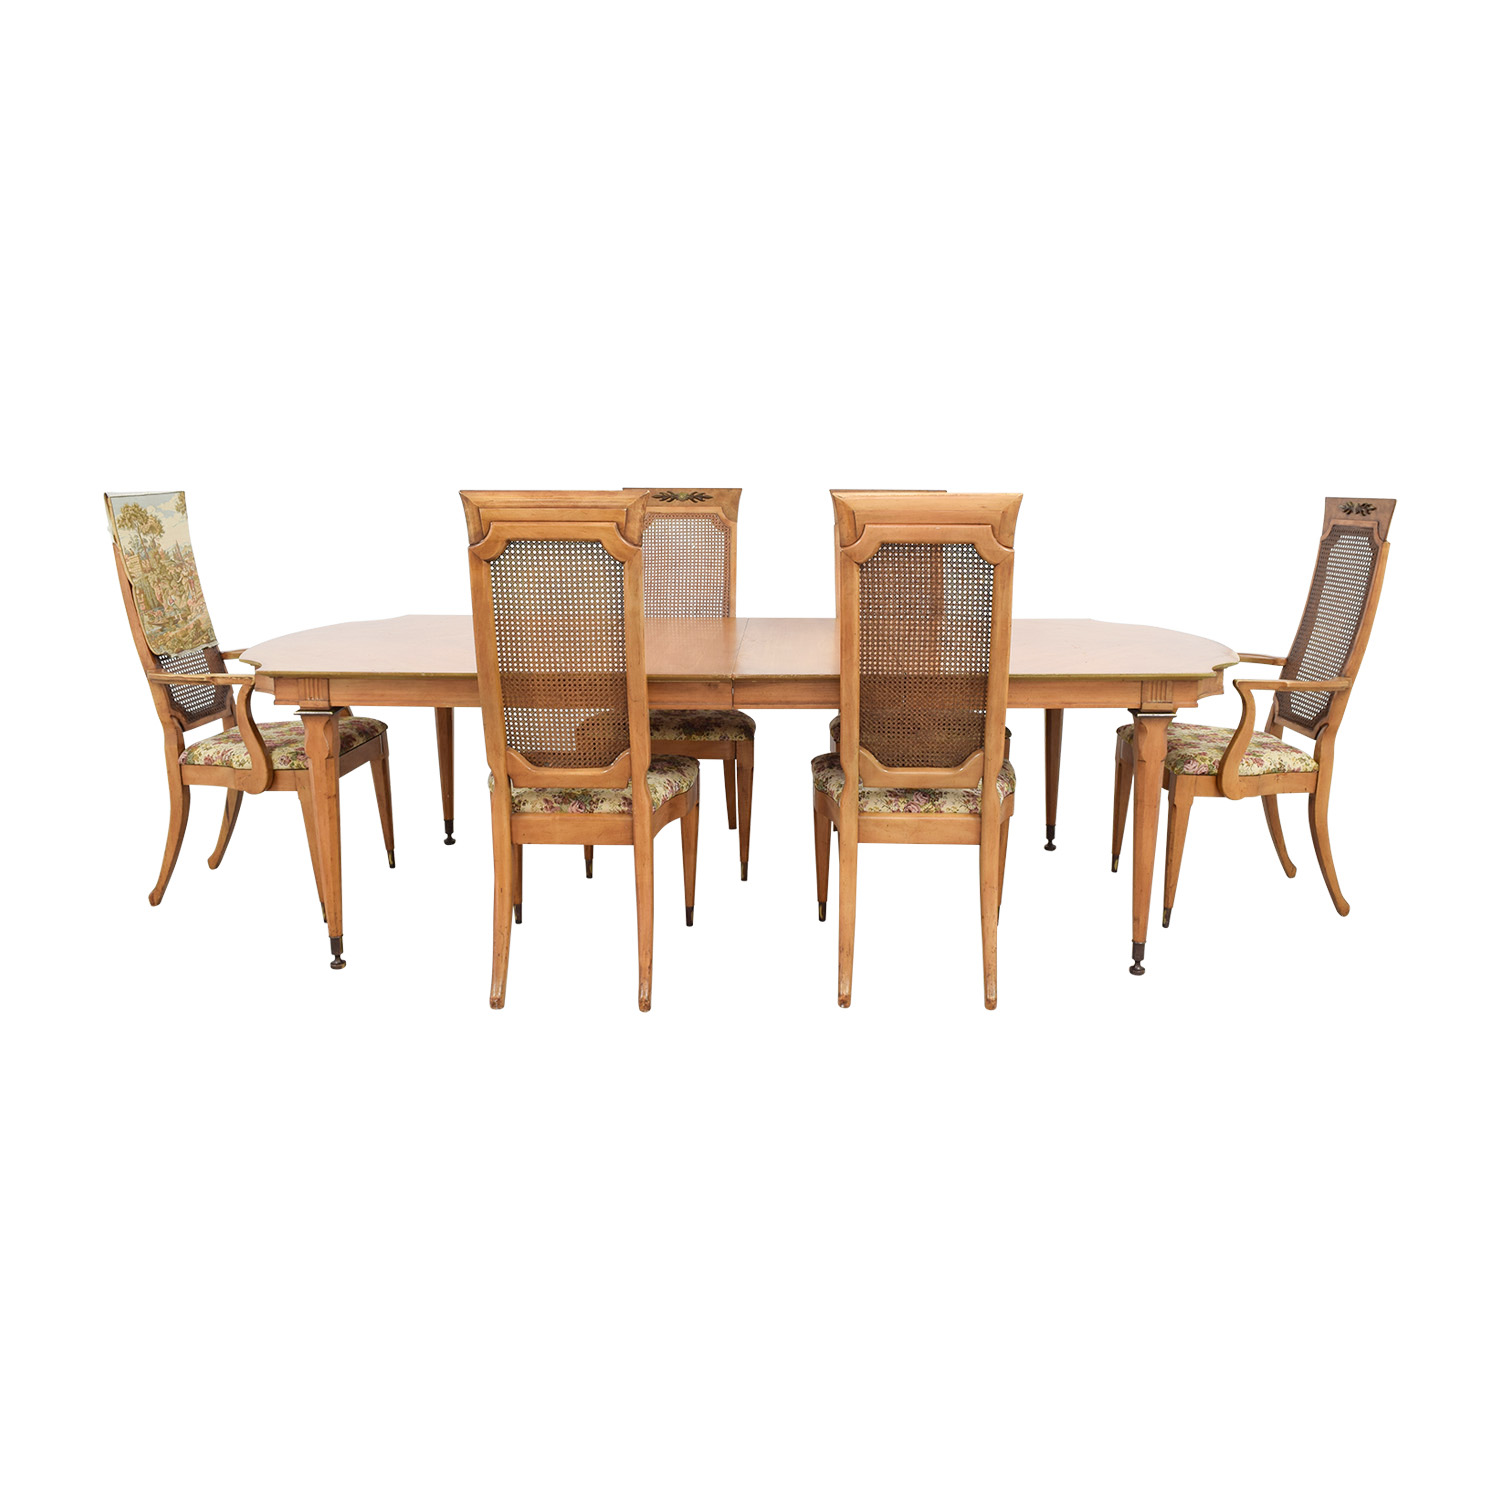 Merz 1968 Merz 1968 Wood Dining Set with Floral Upholstered Chairs price